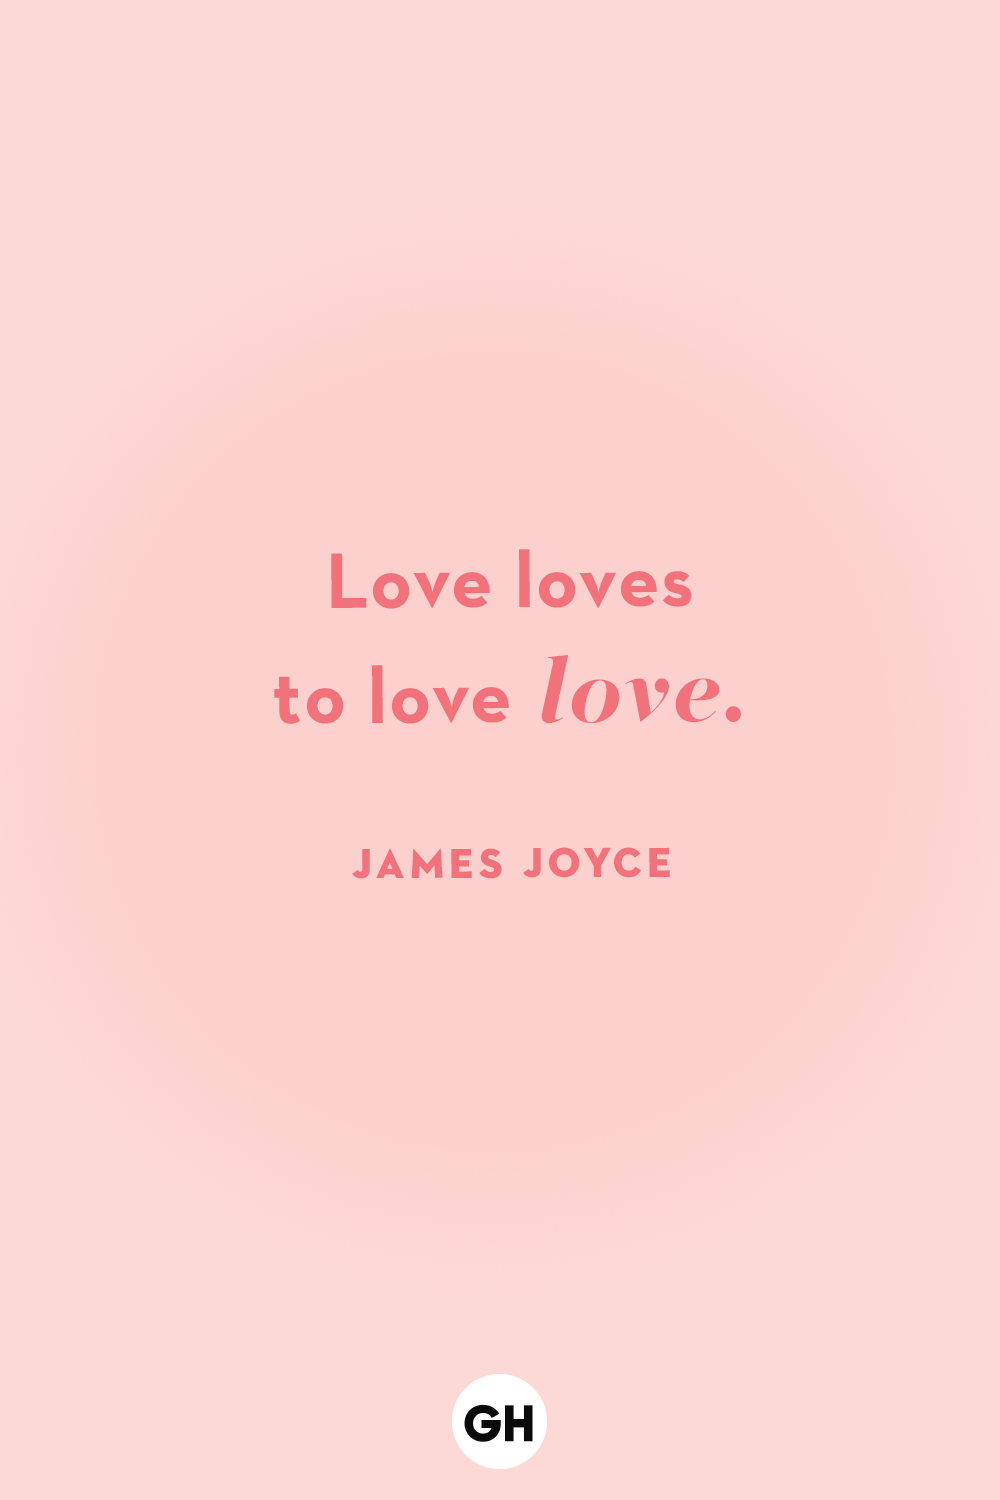 5 Best Love Quotes of All Time - Cute Famous Sayings About Love